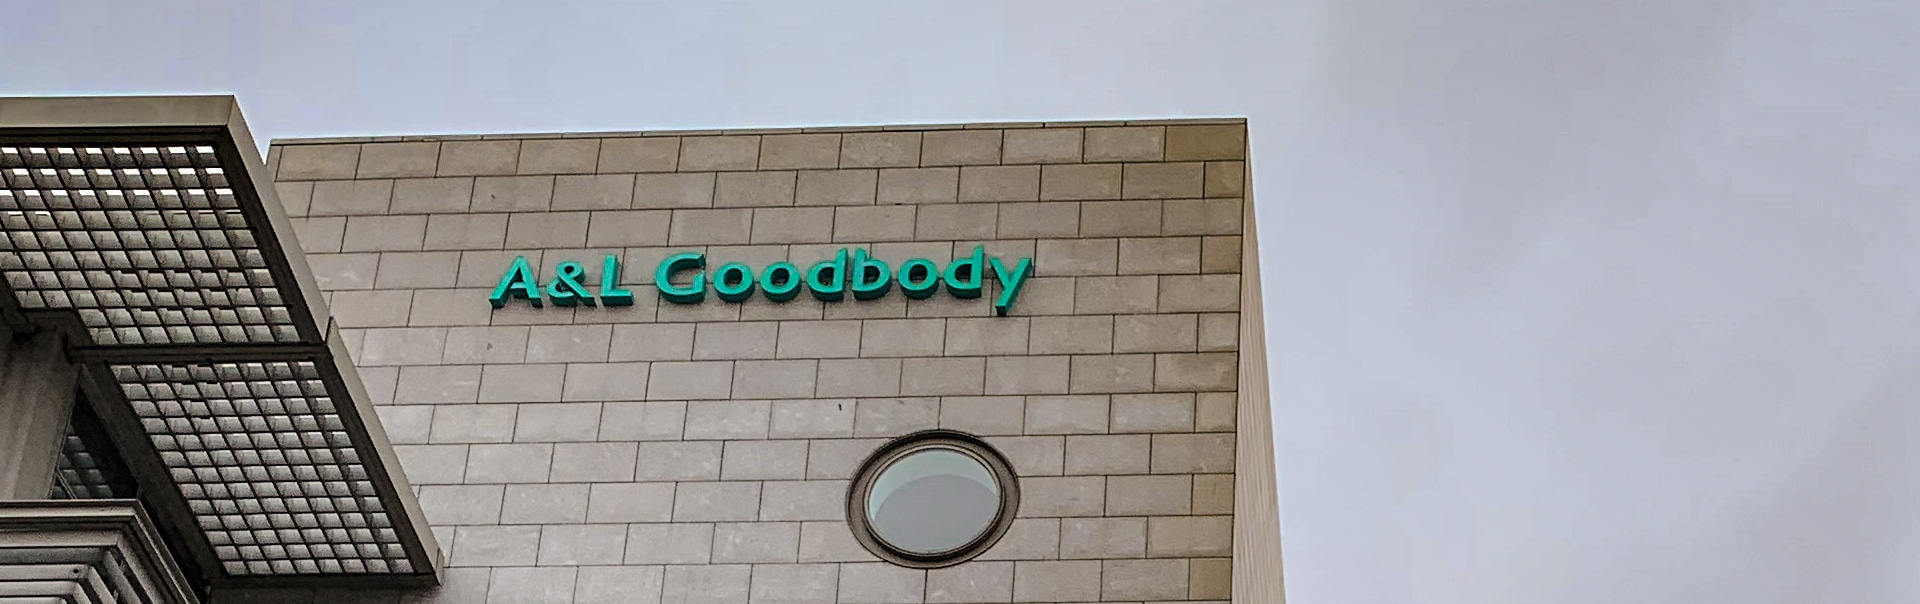 To brand the A&L Goodbody building we used an illuminated sign that is brand green by day and bright white at night.